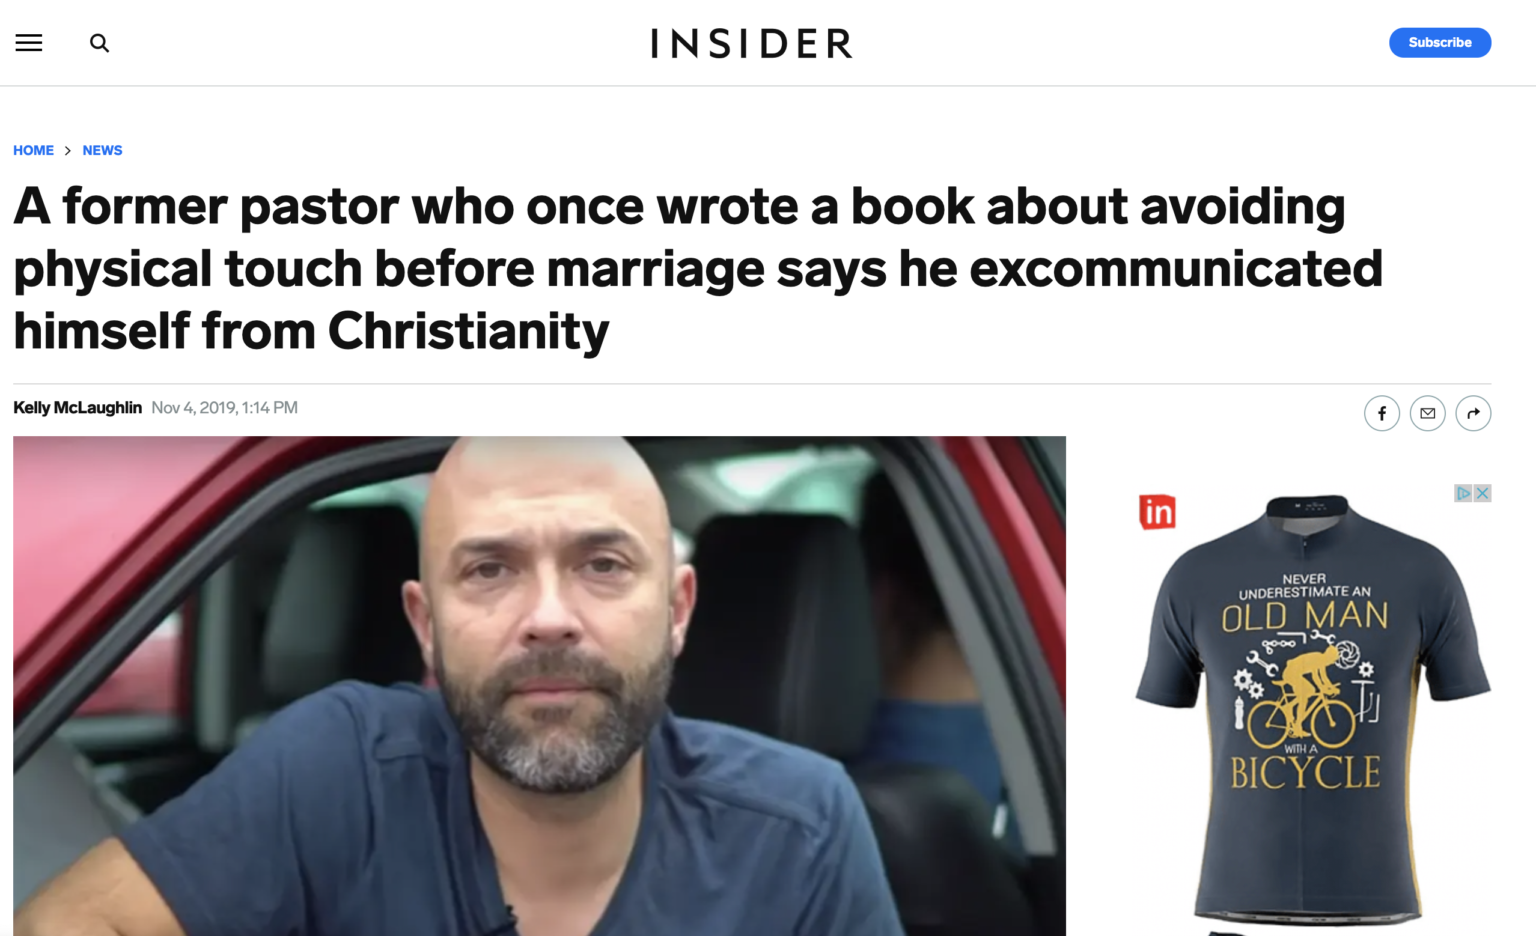 """Insider article with headline """"A former pastor who once wrote a book about avoiding physical touch before marriage says he excommunicated himself from Christianity"""""""